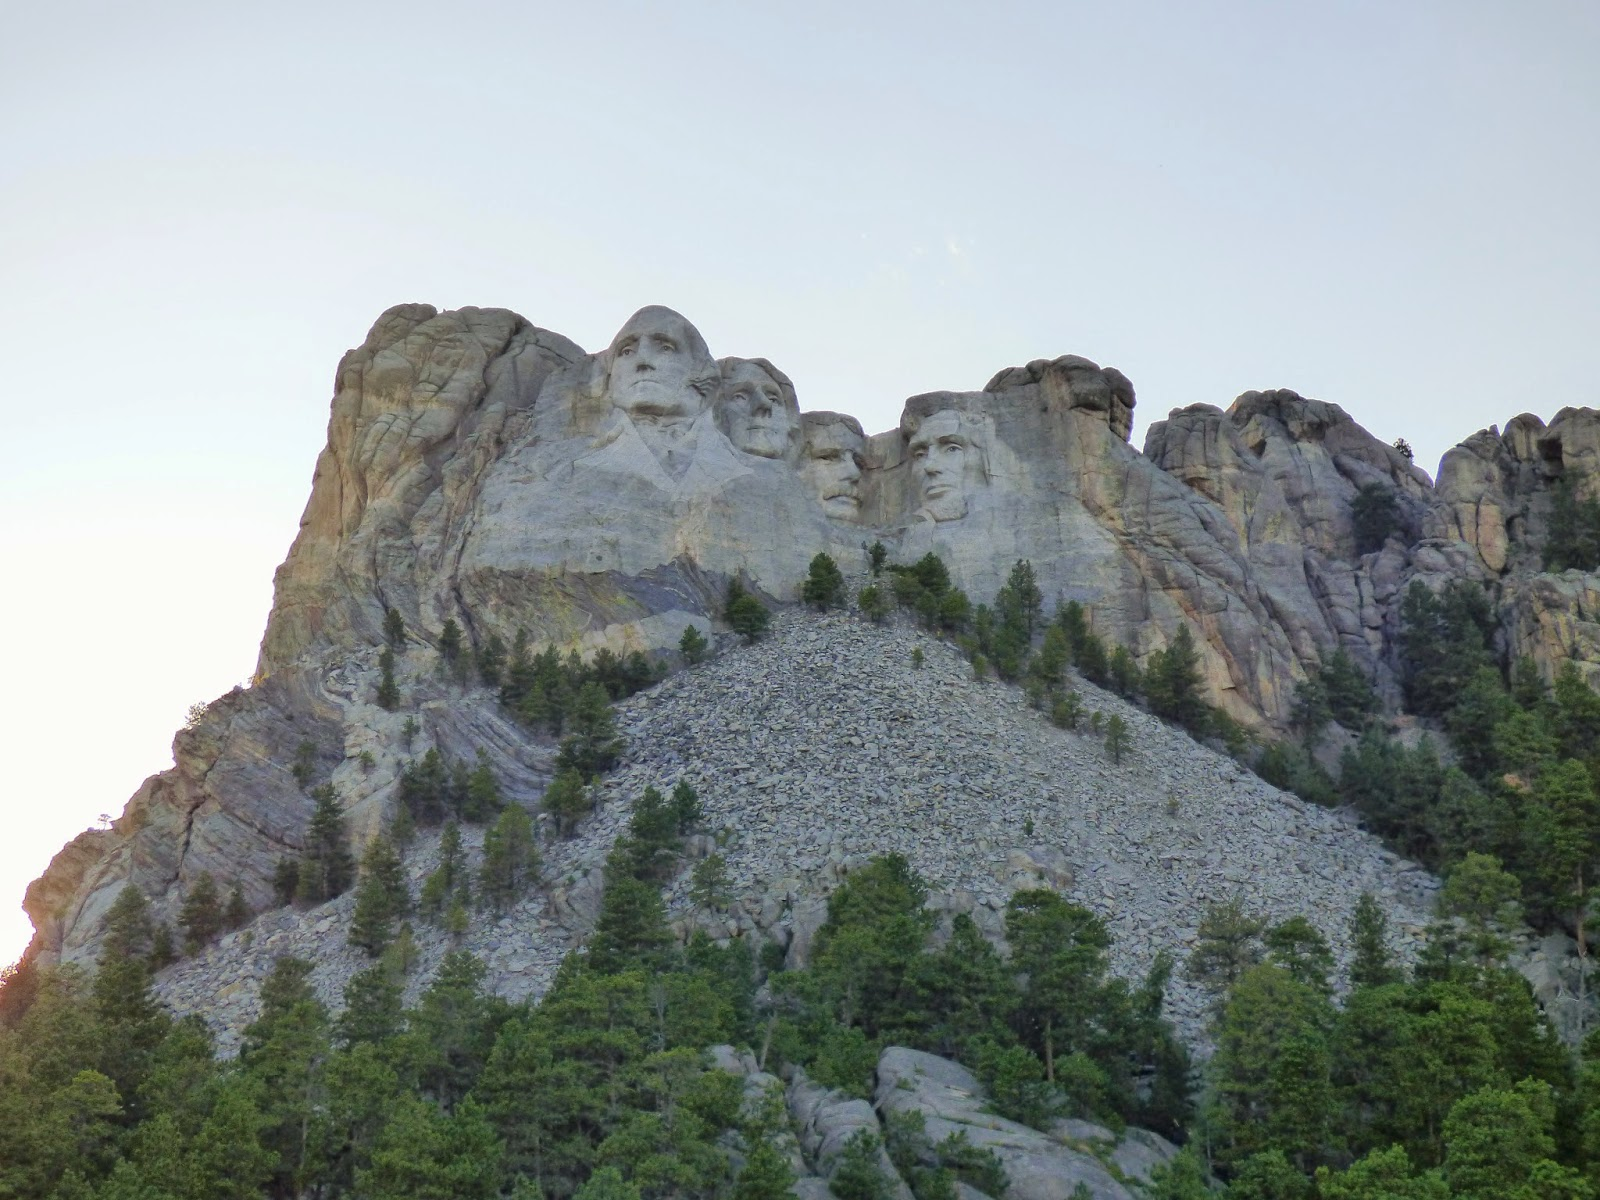 We stayed at Mount Rushmore through the evening so we could witness the lighting ceremony. If you visit Mount Rushmore anytime in the future ... & the silver lining: sweet south dakota: day 1 (mount rushmore) azcodes.com